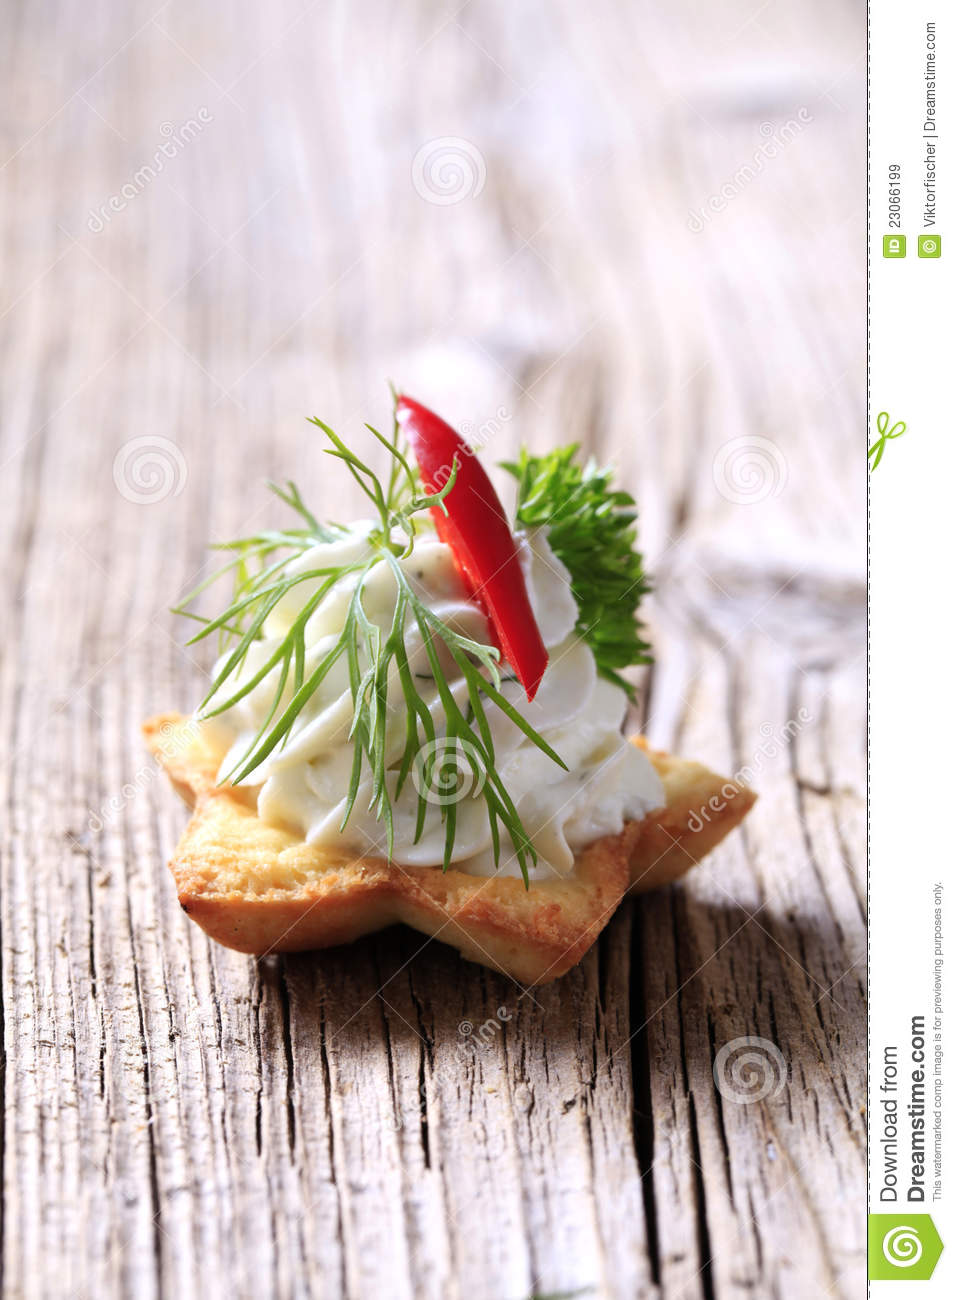 Canape royalty free stock images image 23066199 for Canape spread